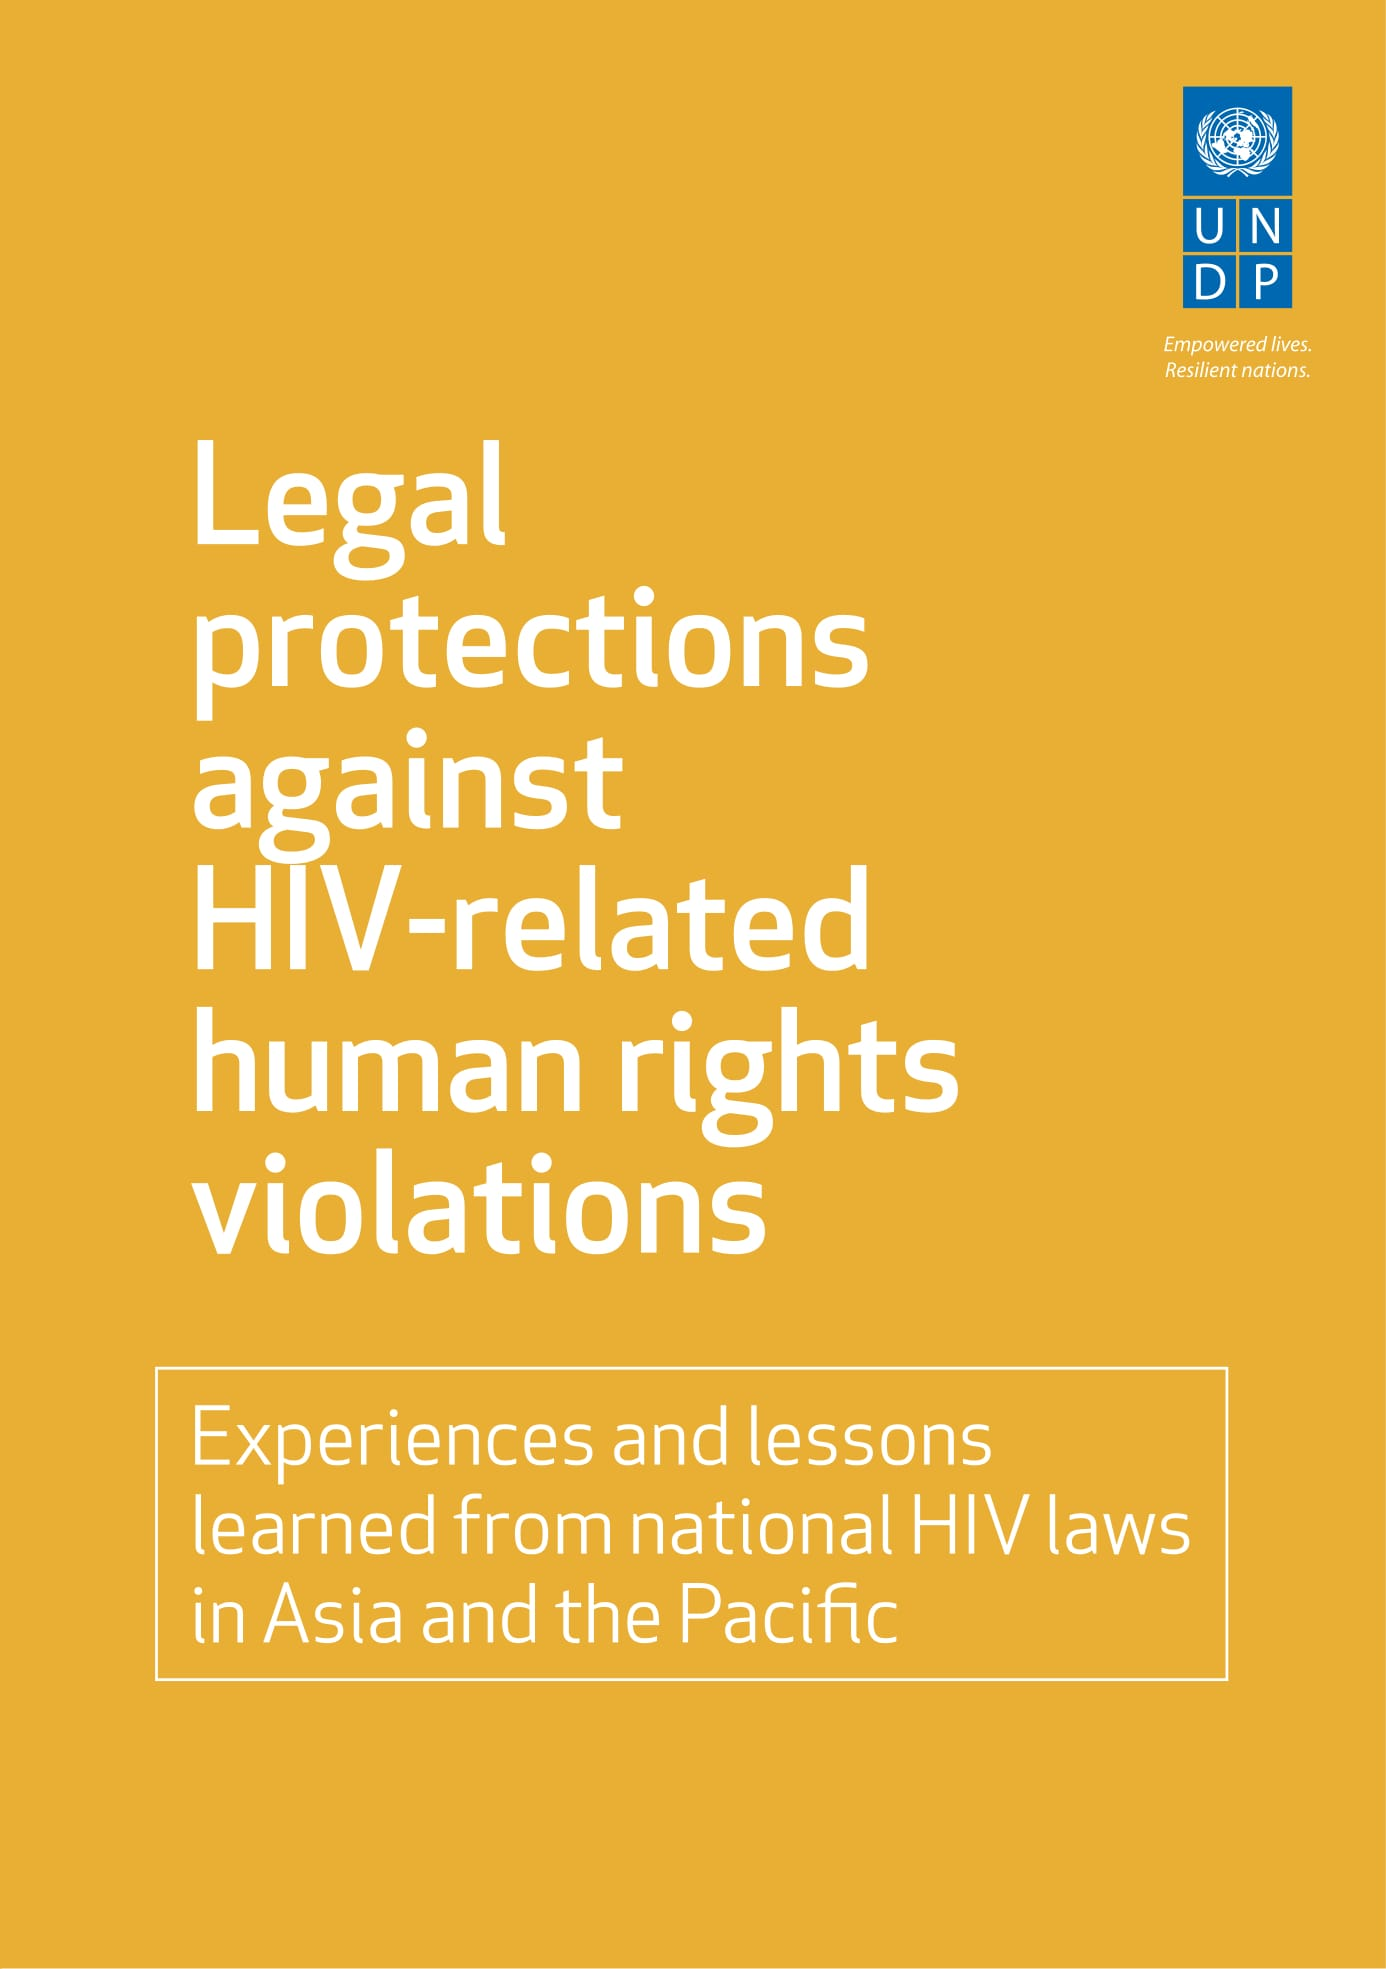 Legal protections against HIV-related human rights violations: Experiences and lessons learned from national HIV laws in Asia and the Pacific